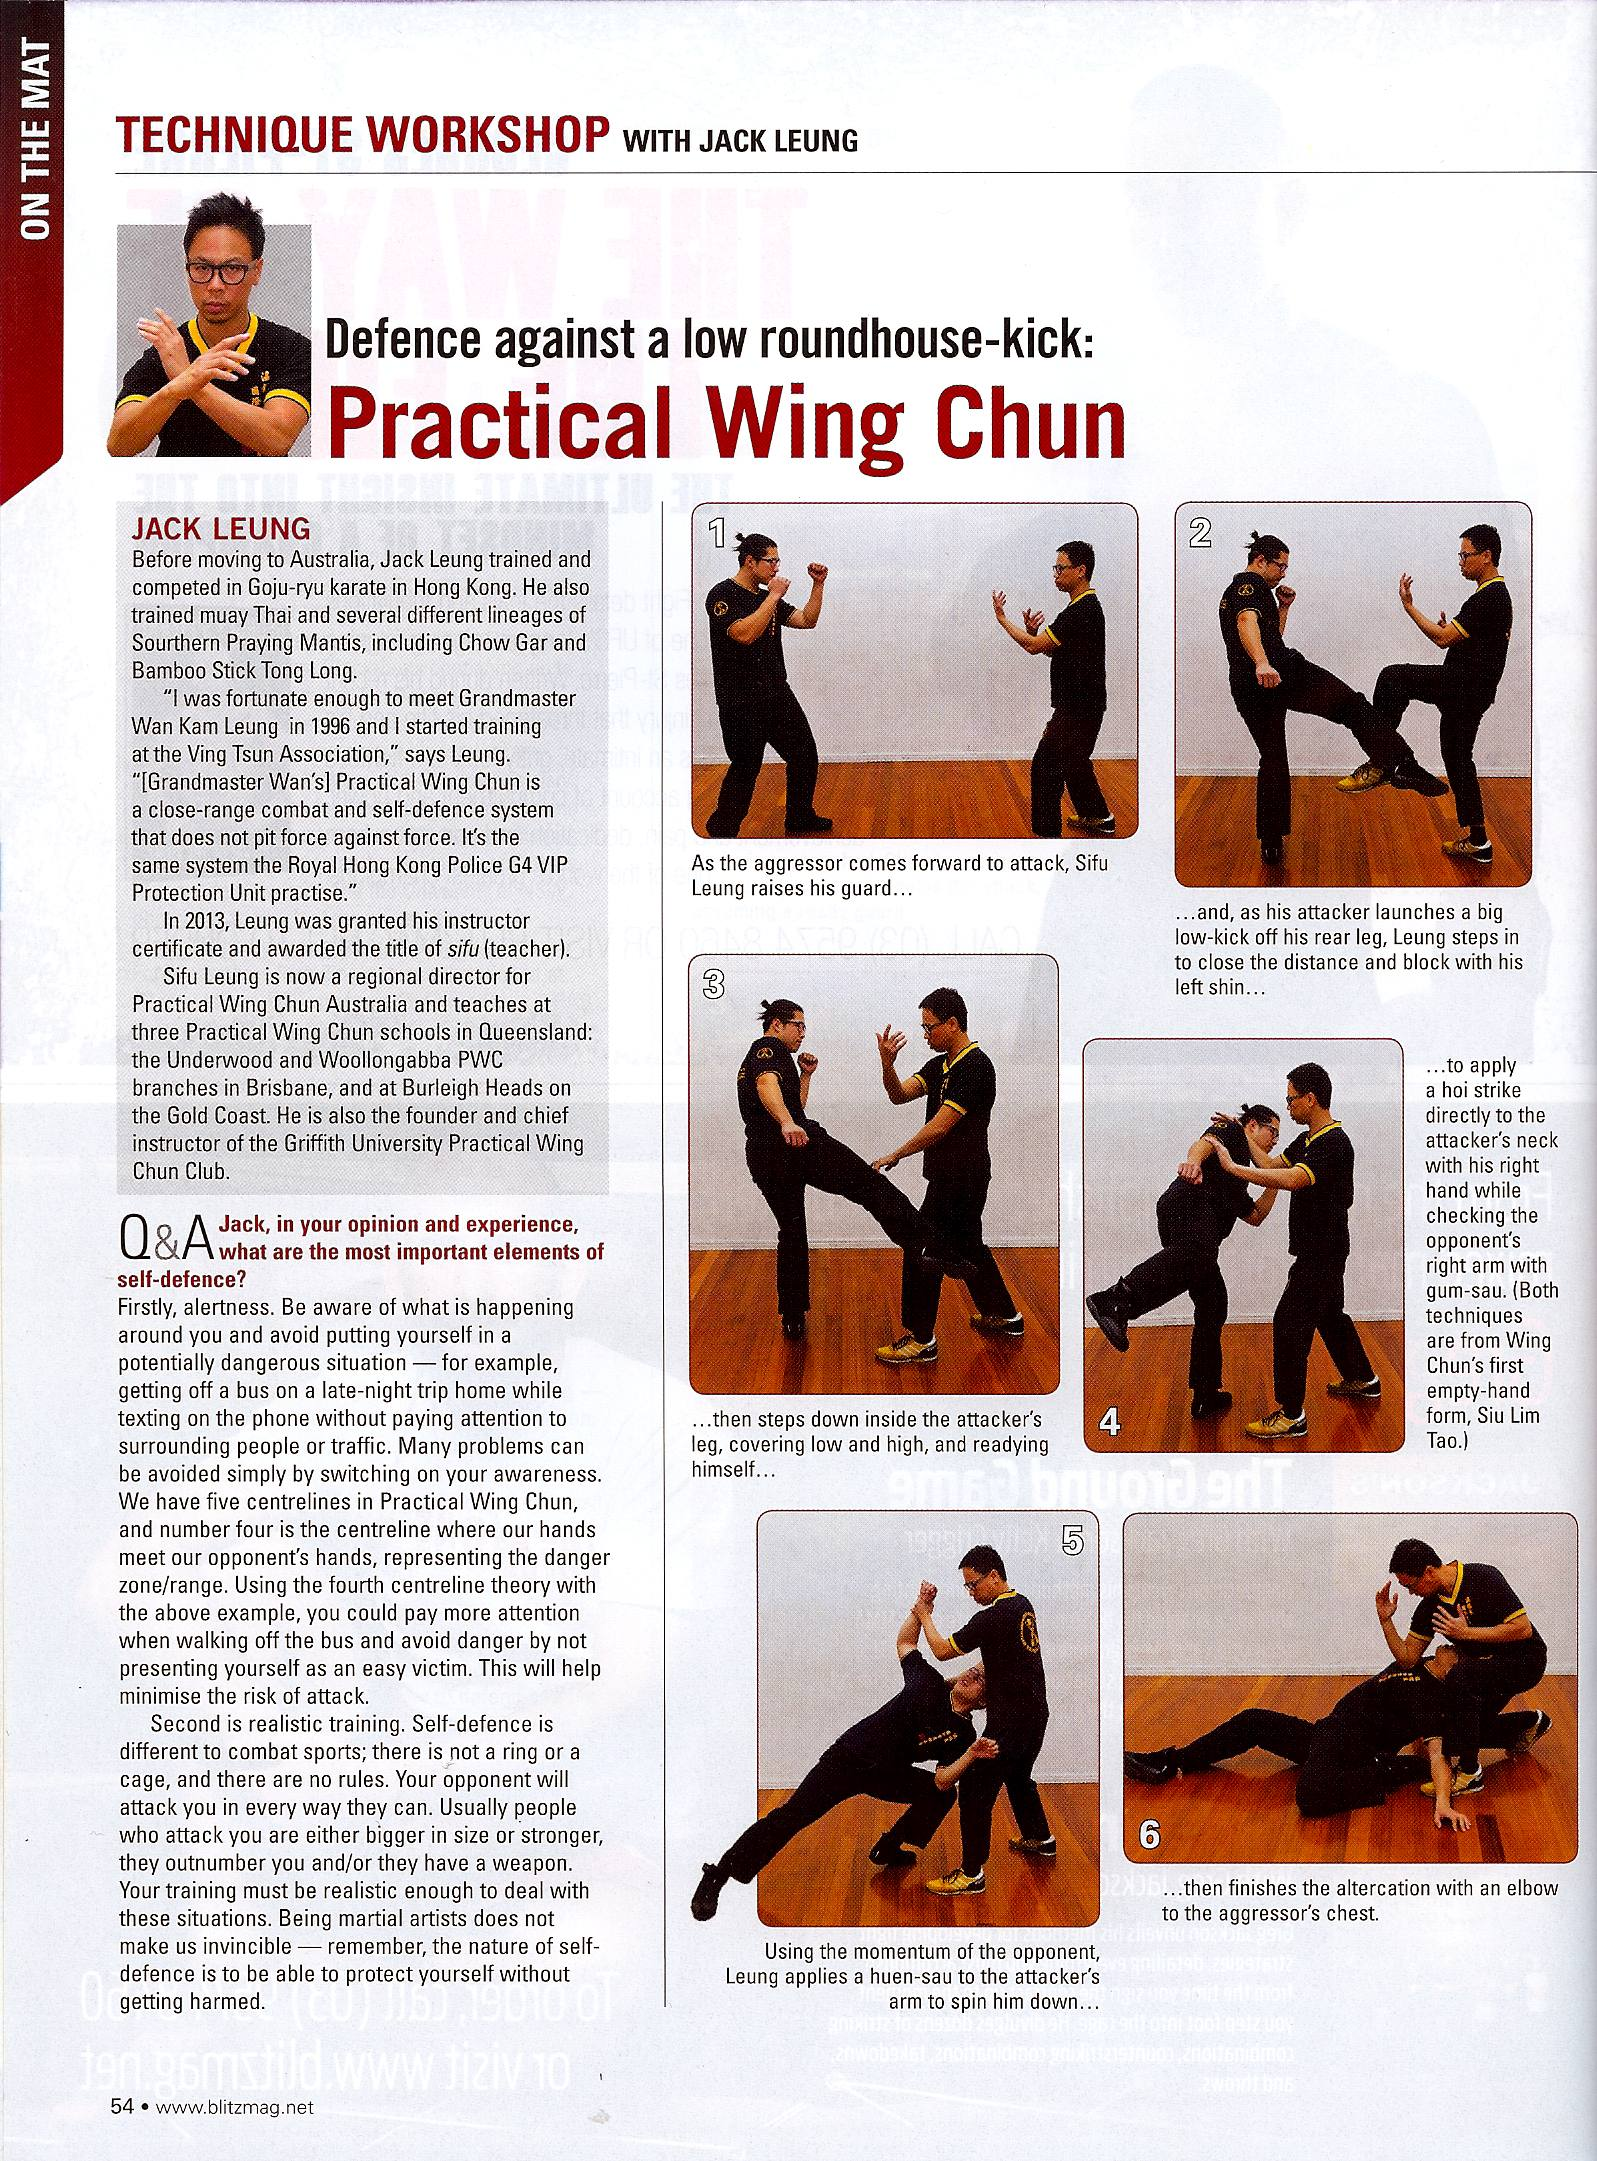 For wing pdf beginners techniques chun